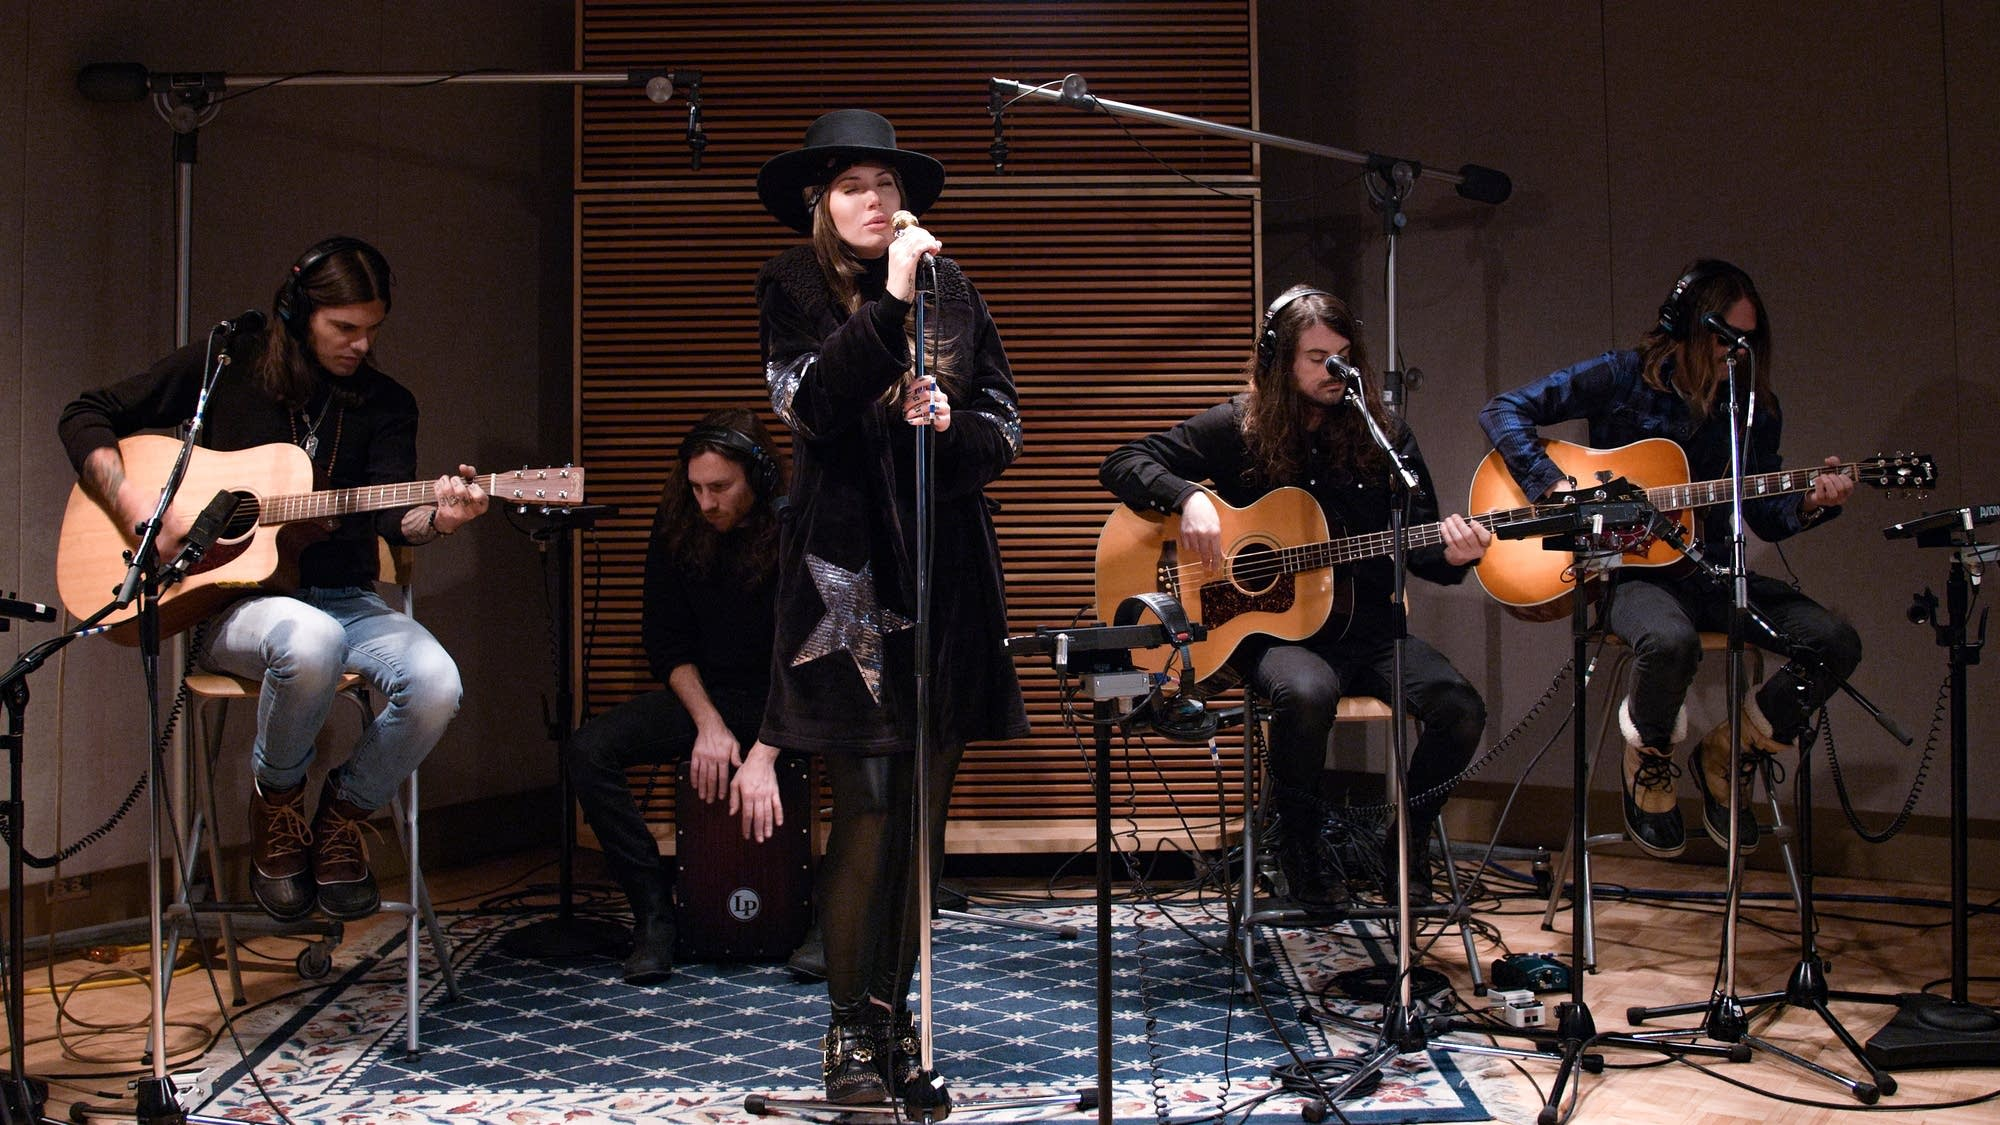 Dorothy perform in The Current studio